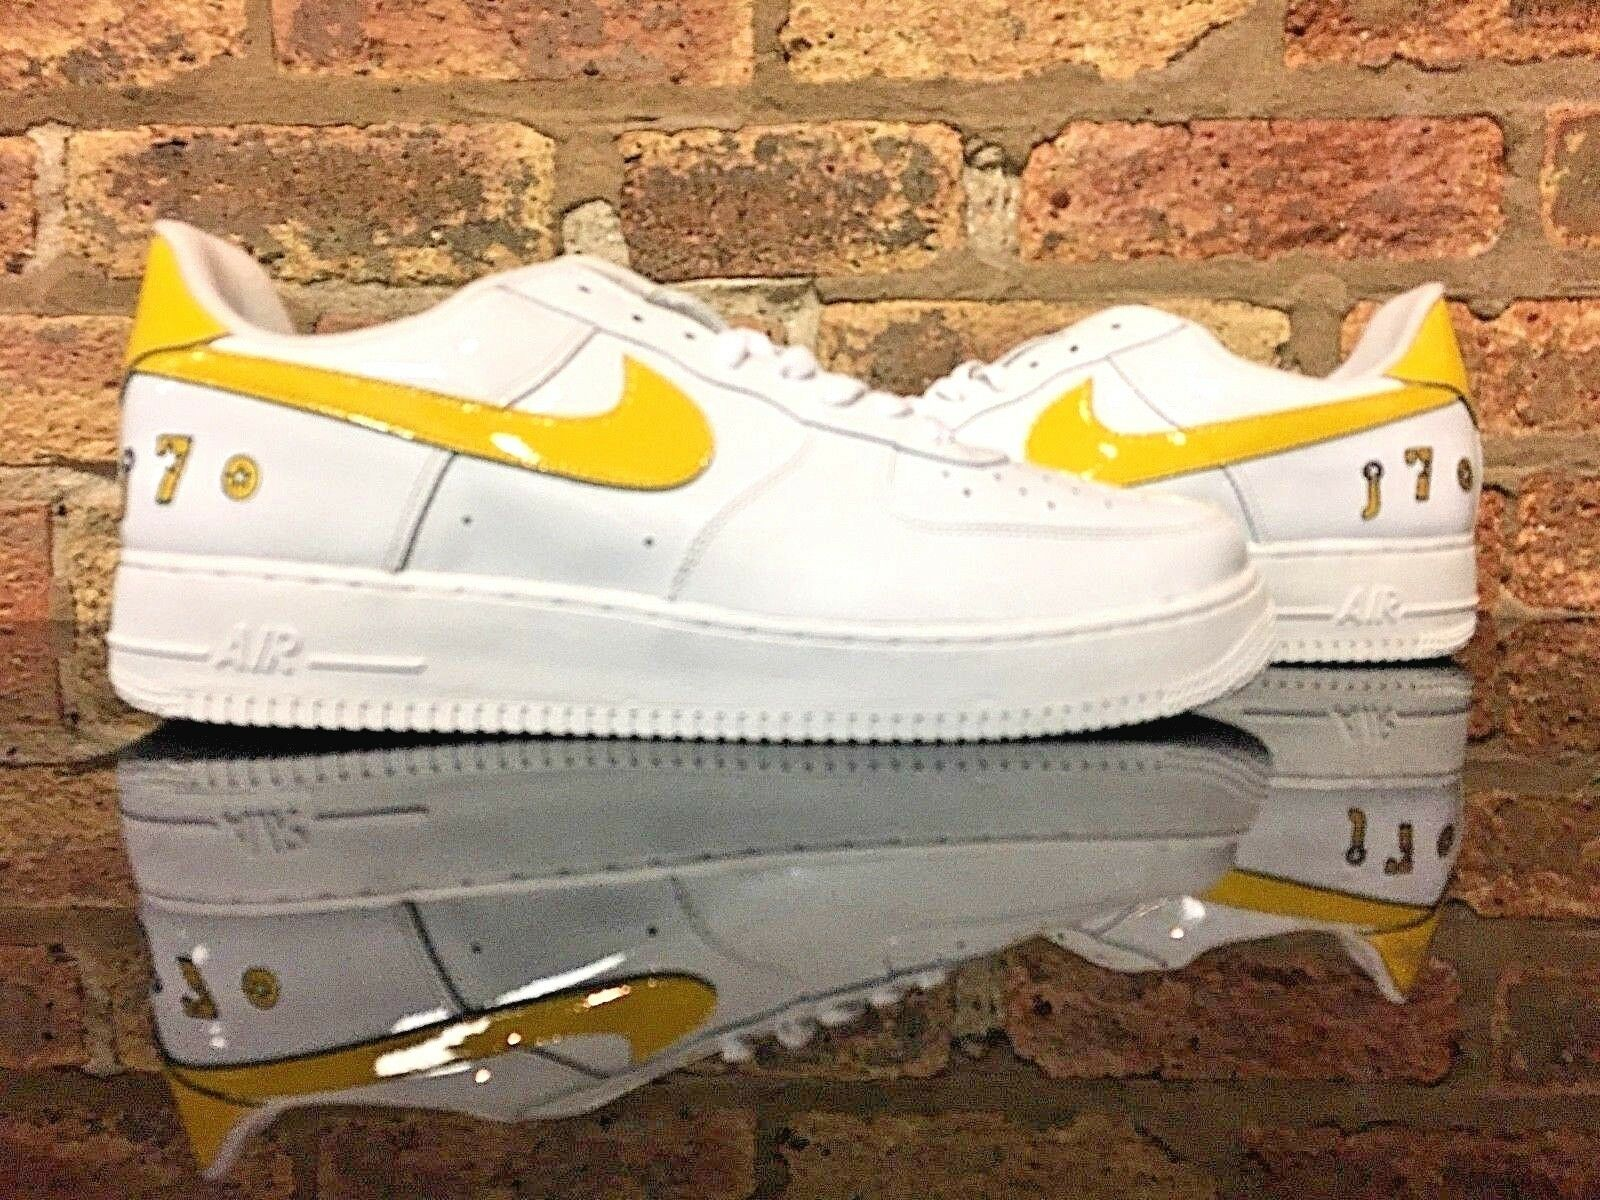 Nike Air Force 1 Low Jermaine O'Neal White Size 14 SAMPLE